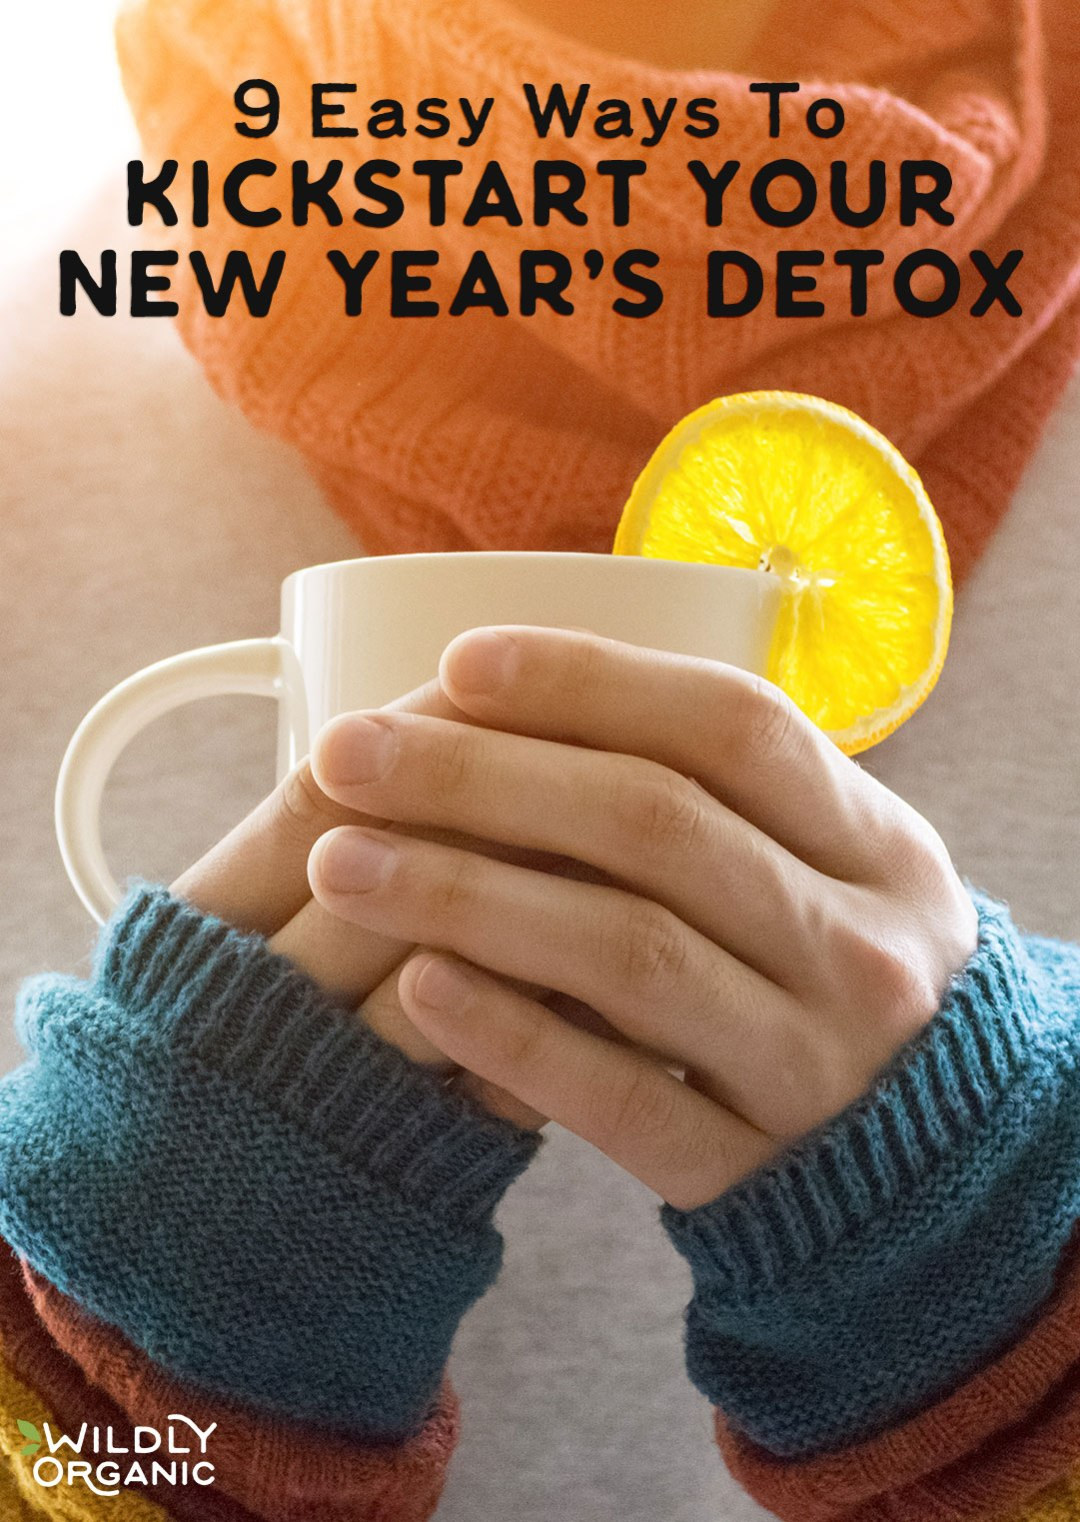 For many, the start of a new year signals new beginnings, big changes, and above all, renewed focus on a healthy lifestyle. Here are 9 easy ways to kickstart your New Year's detox, from what you put in your body to what you put on it!